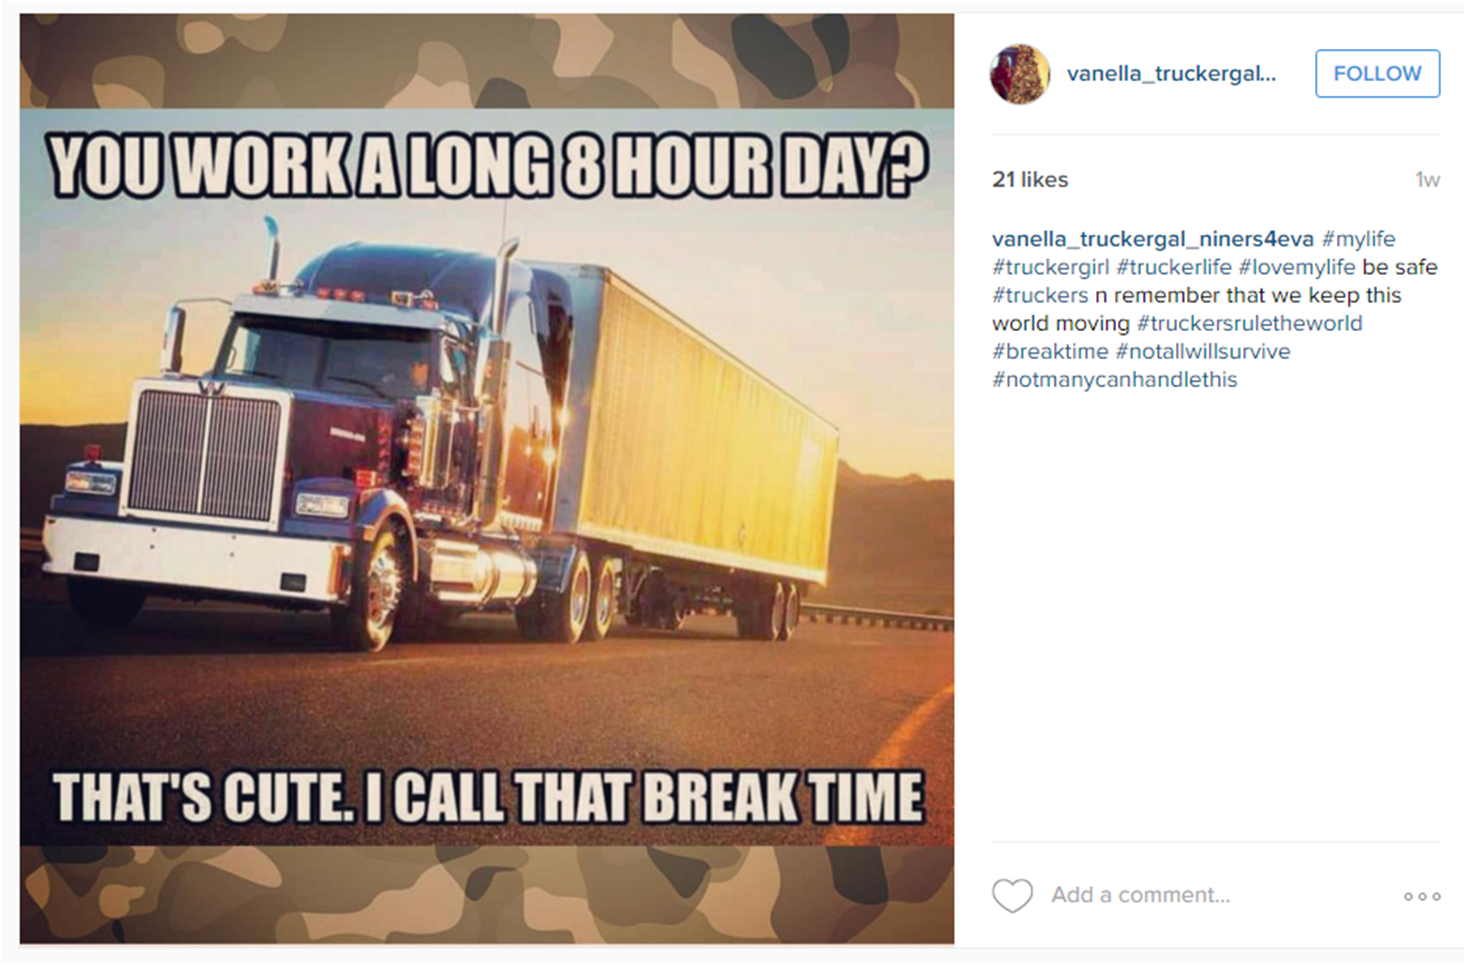 vanella_truckergal_niners4ever_long_day_redefined (1)